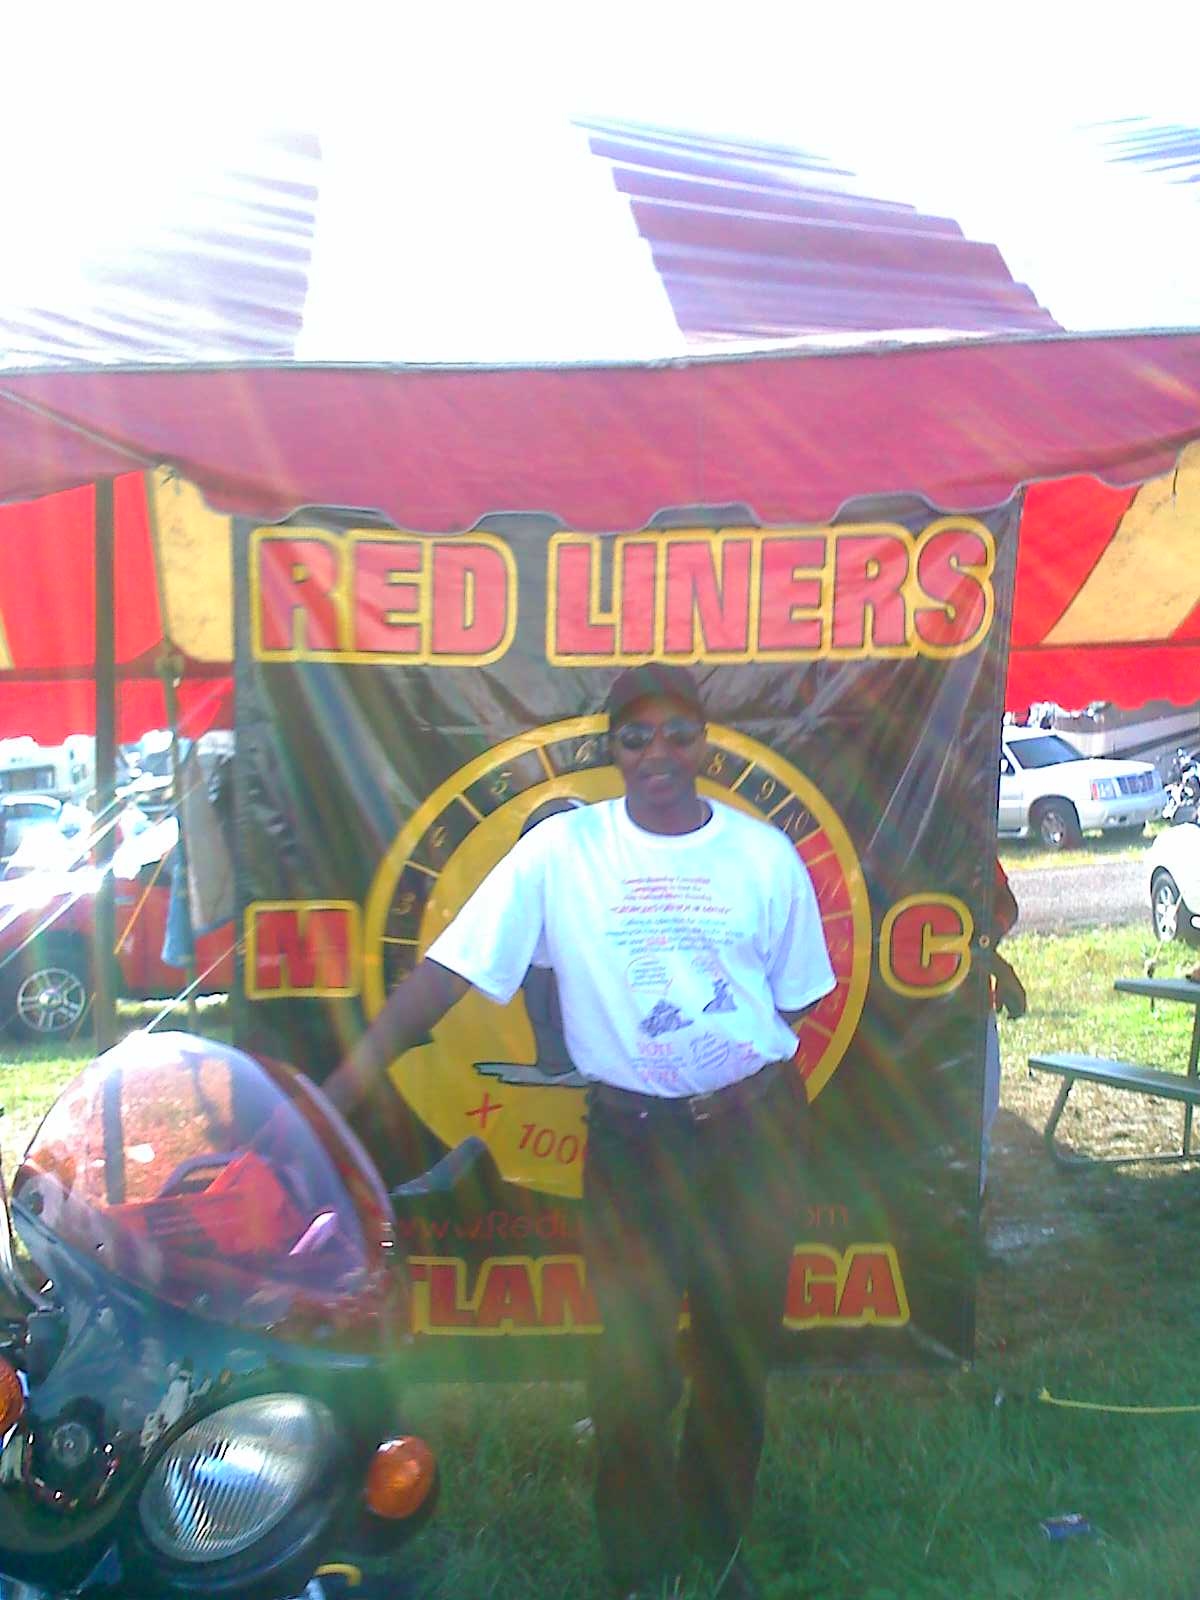 http://webzoom.freewebs.com/redlinersmcatl/Fonts/black banner.swf